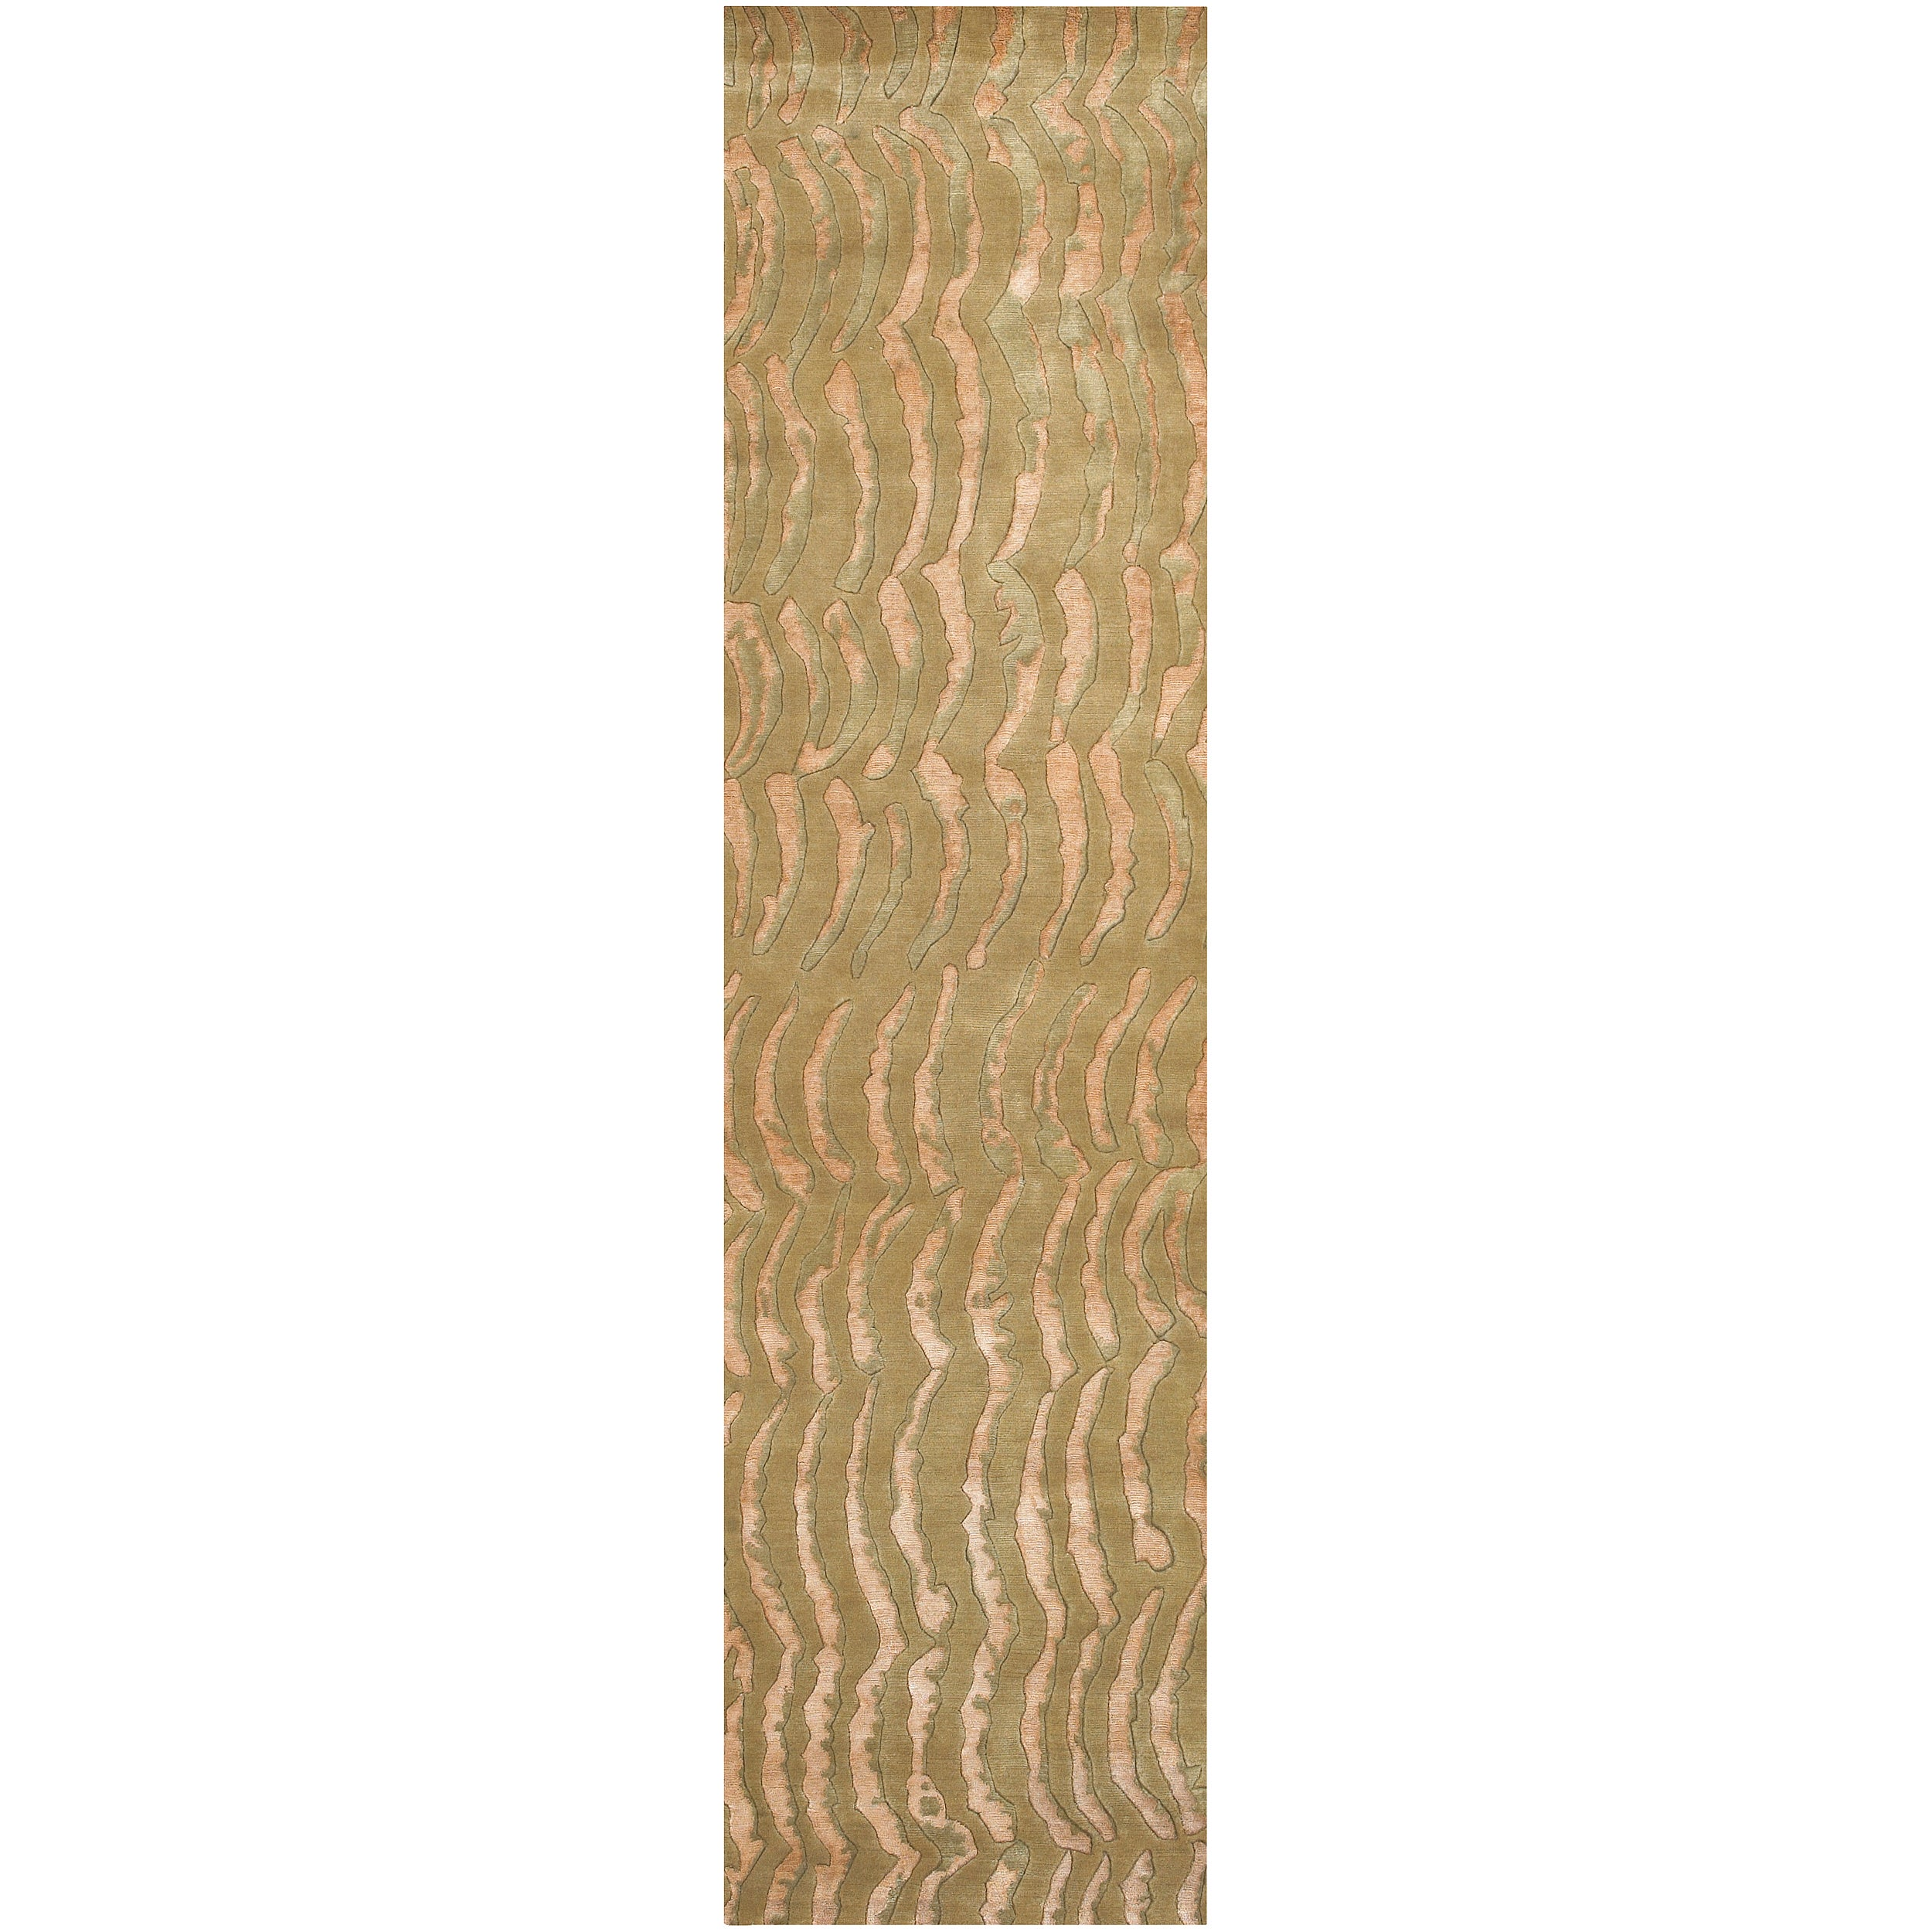 Hand-knotted Multicolored Vilas Abstract Design Semi-Worsted Wool Rug (2 '6 x 10')